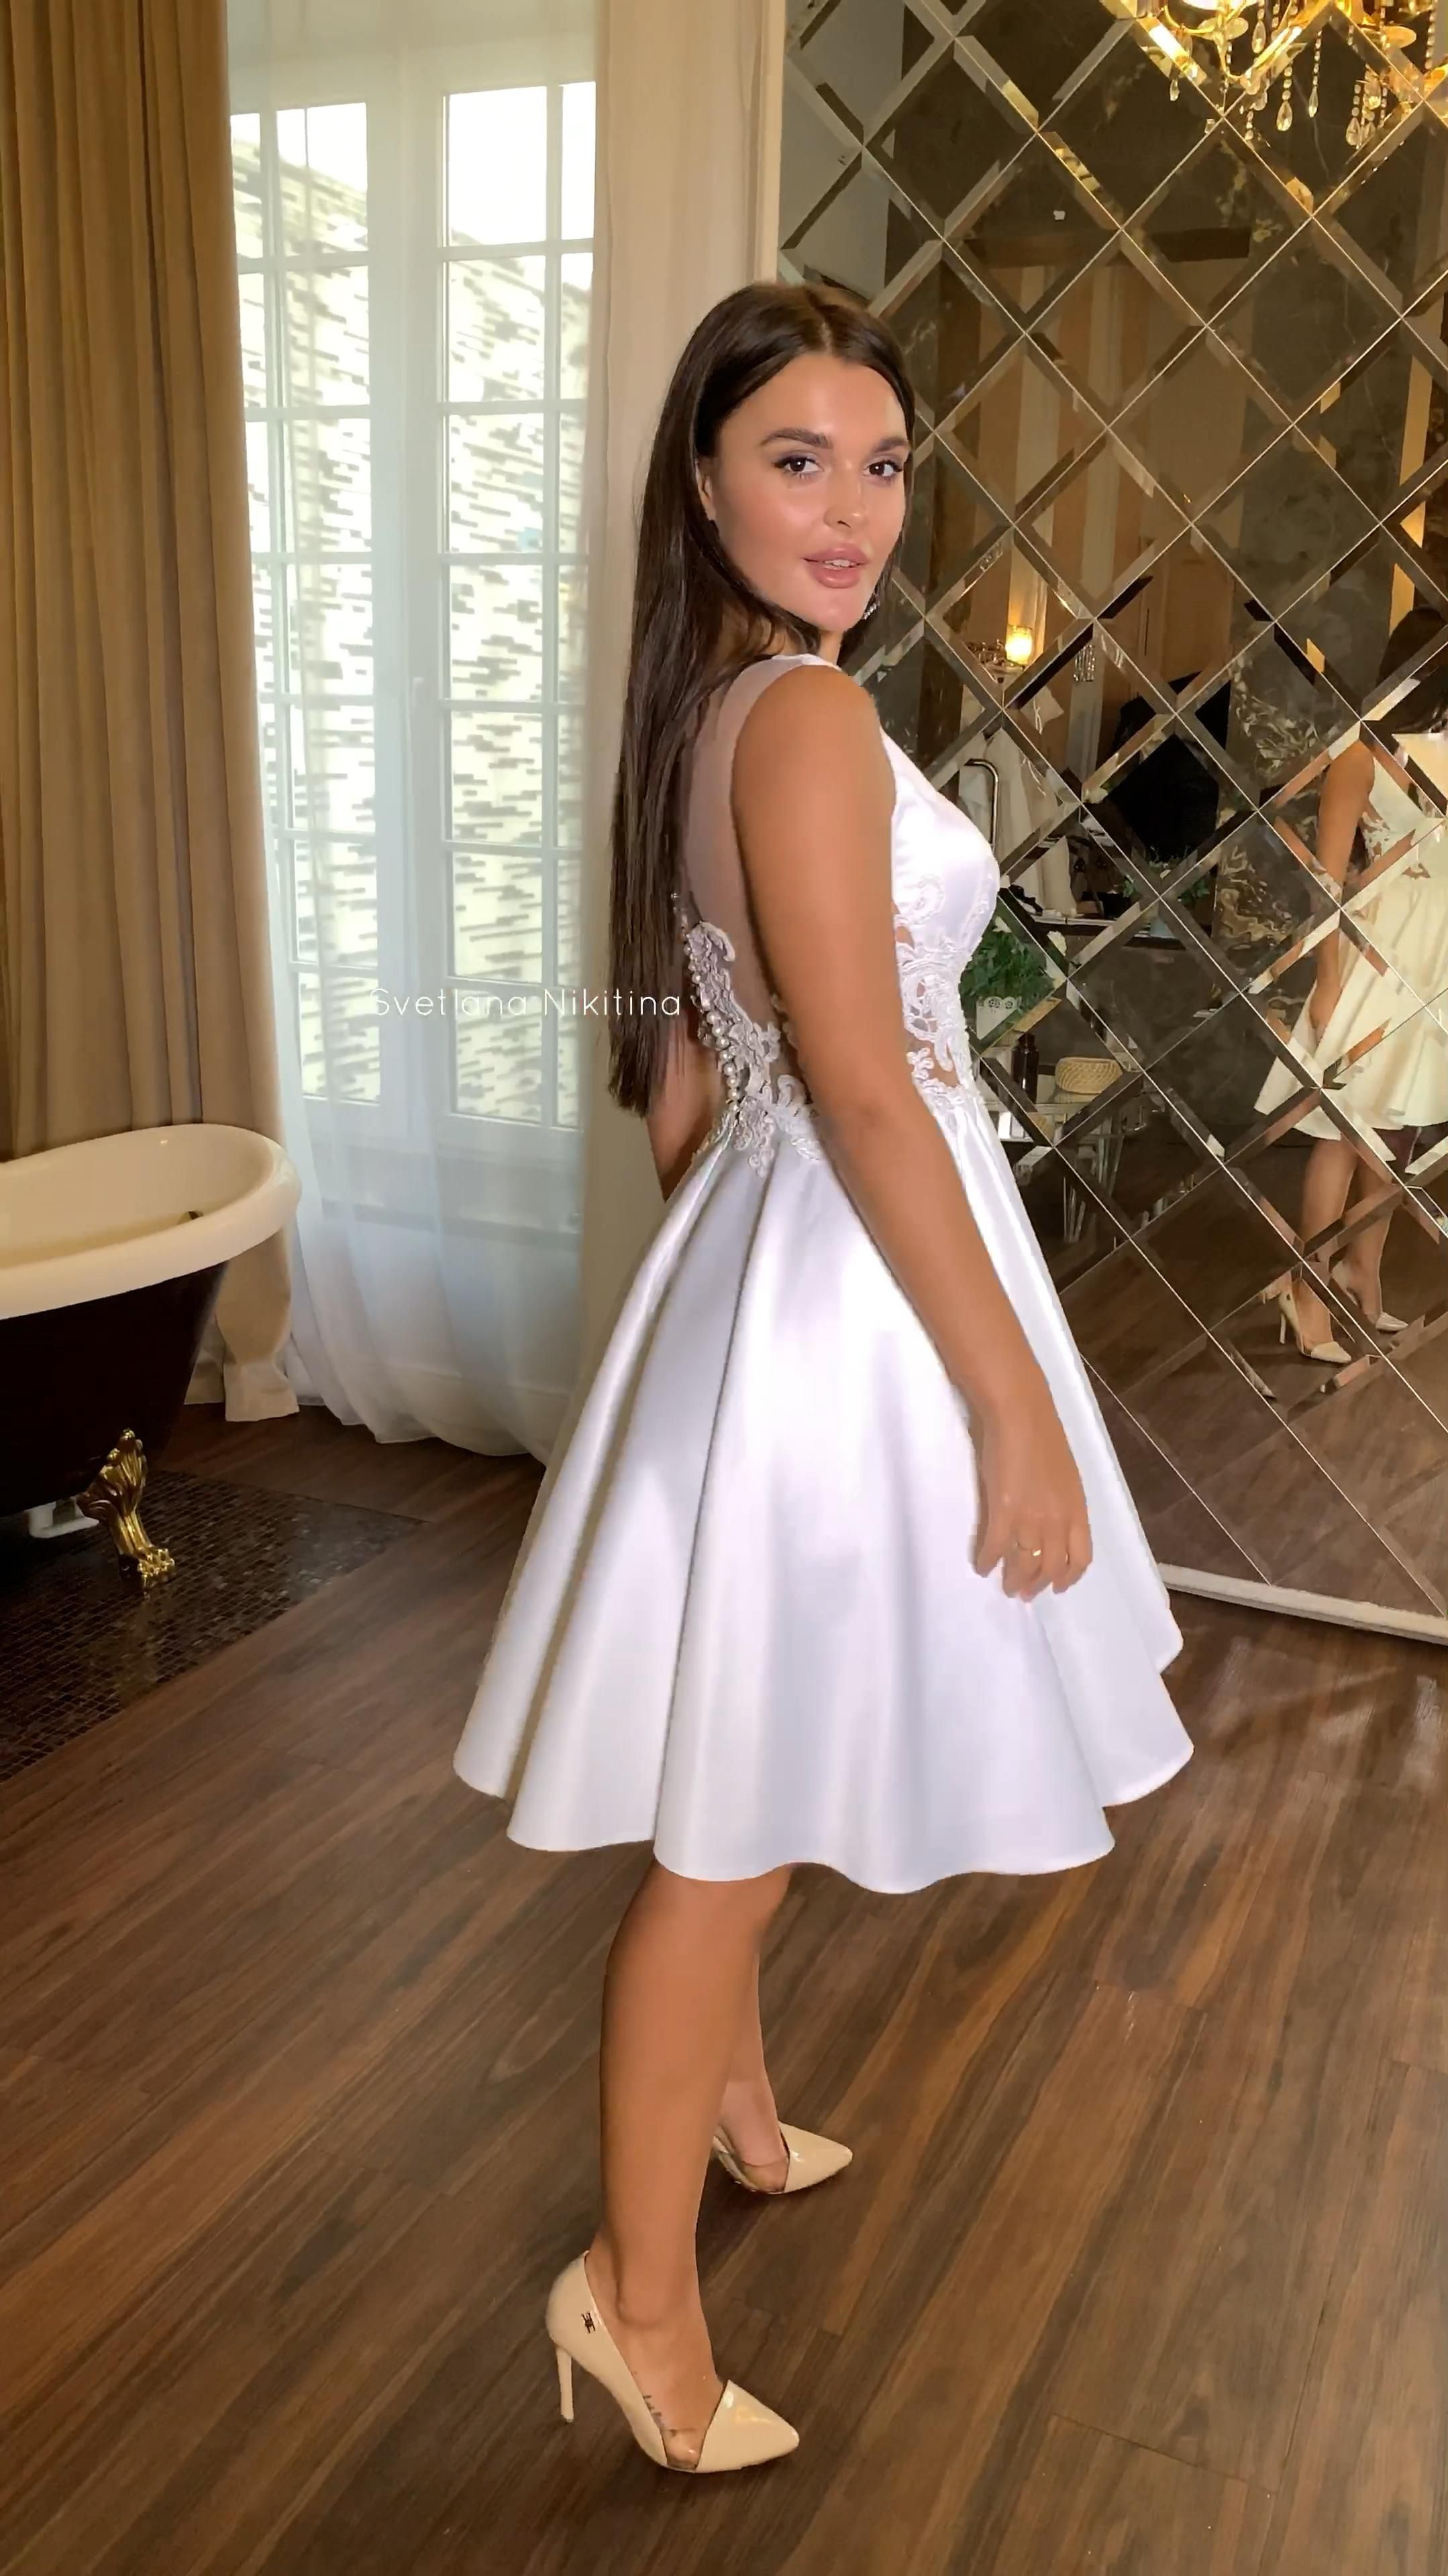 Short wedding gown Satin bridal dress Boat neck Backless with buttons and lace Knee lenght Custom wedding gown Simple wedding dress